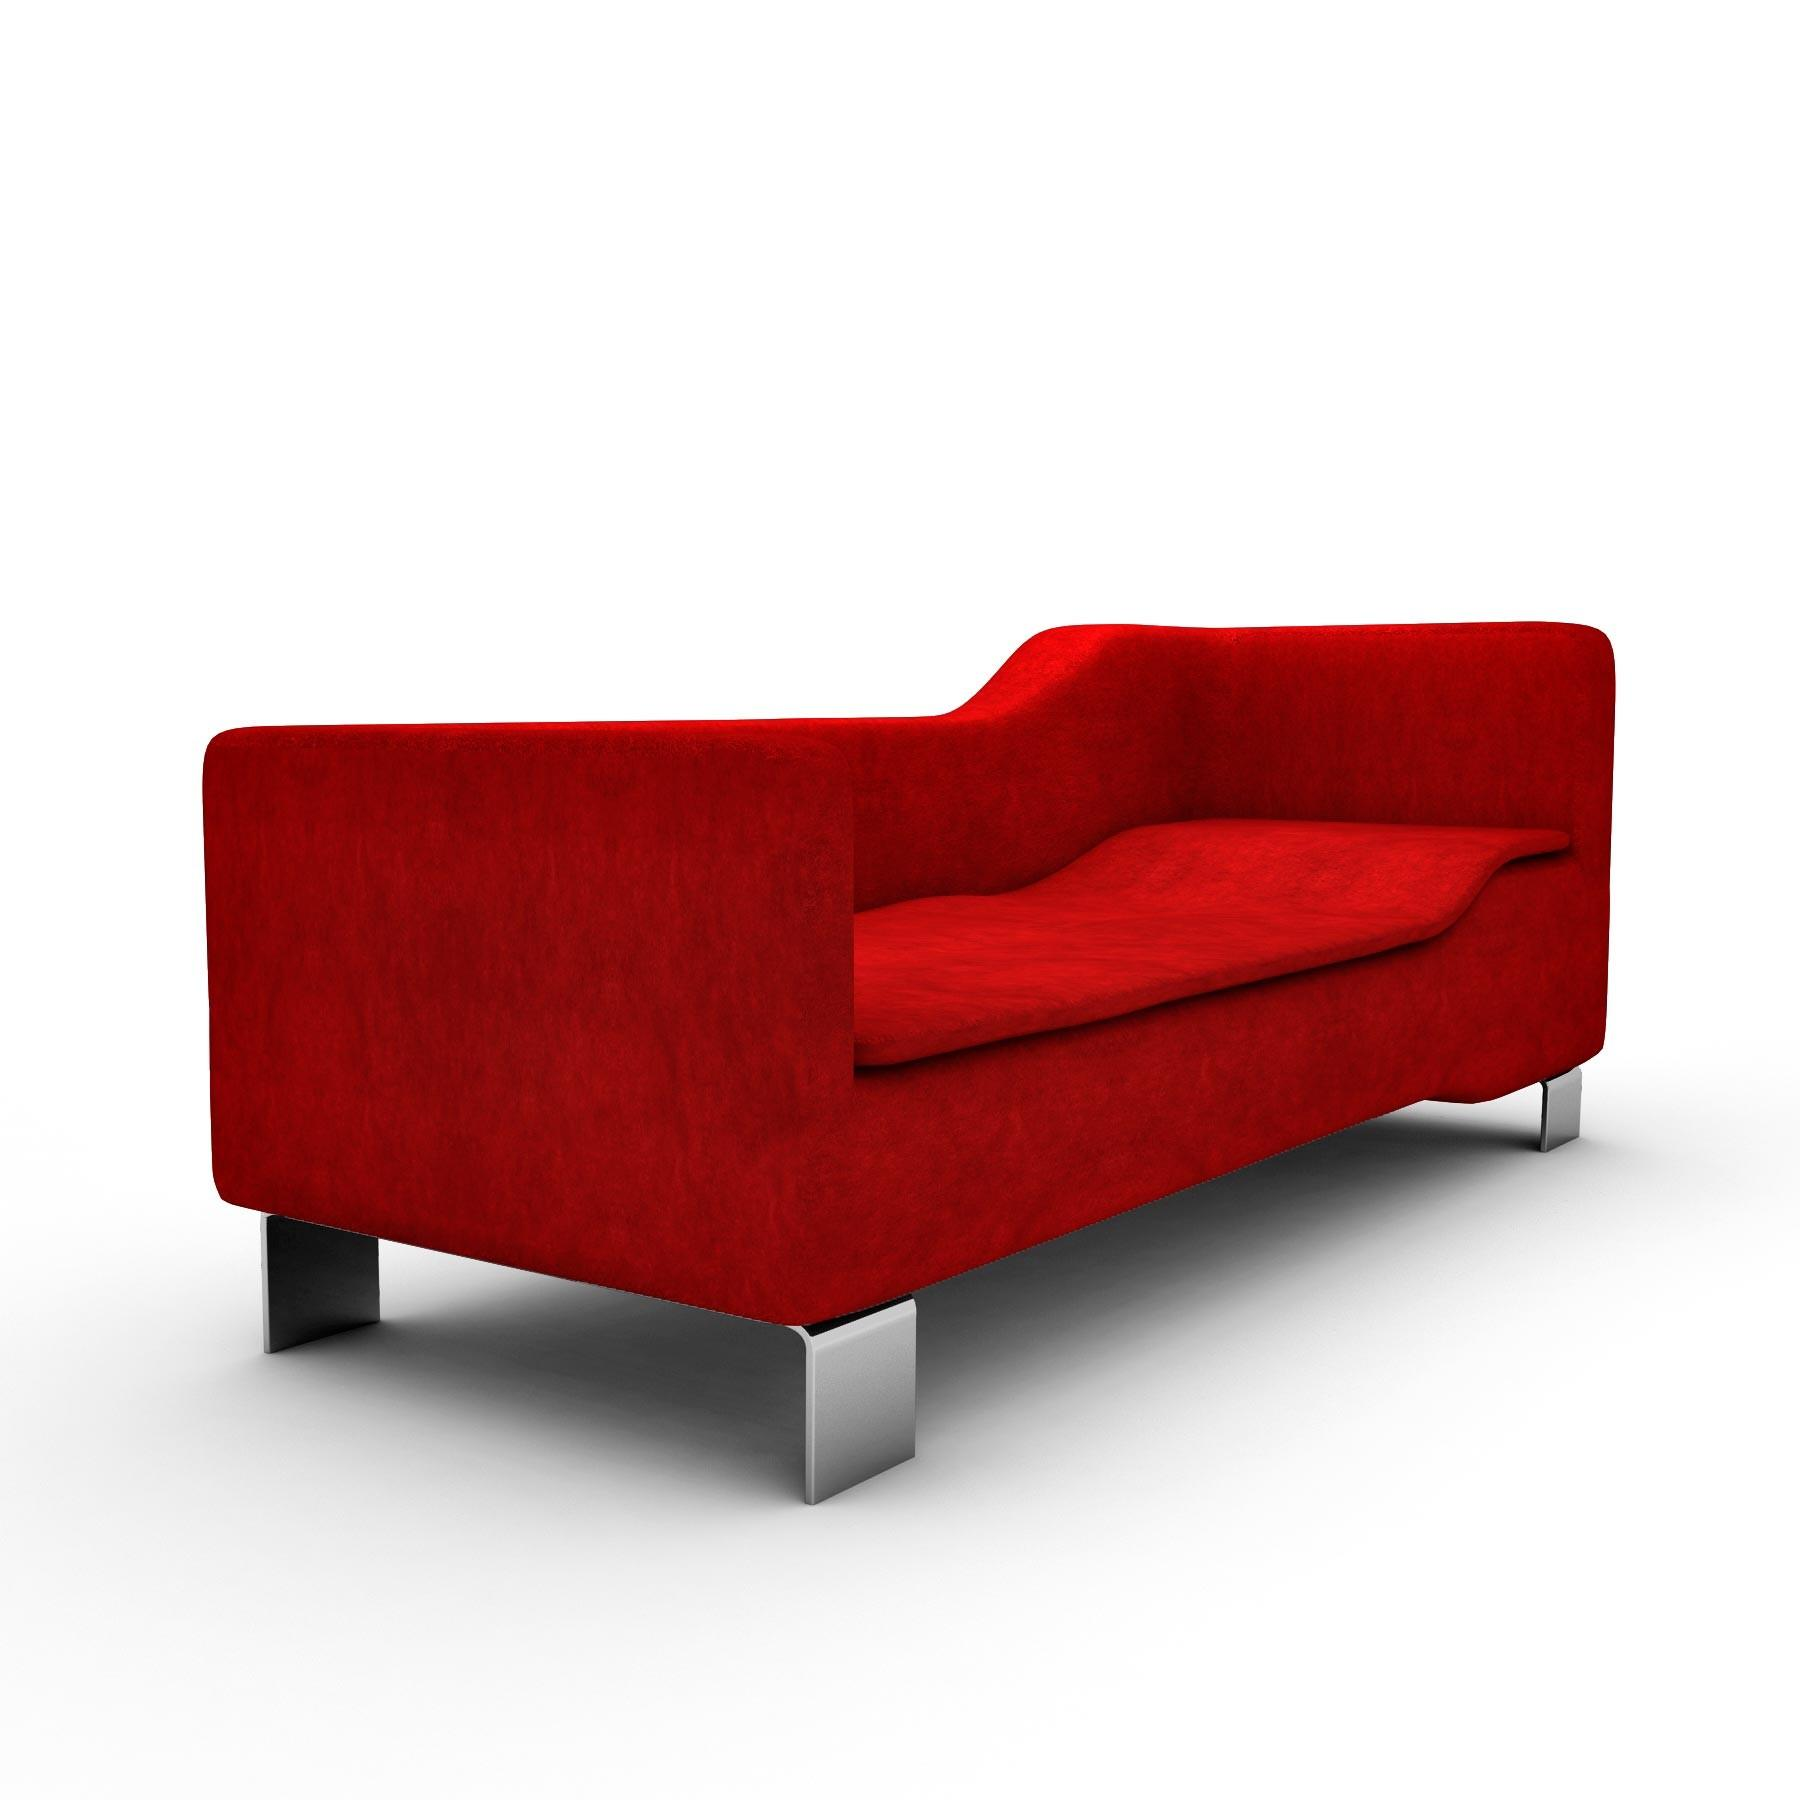 Red Leather Sofa Chaise Lounge Black Wooden Frame